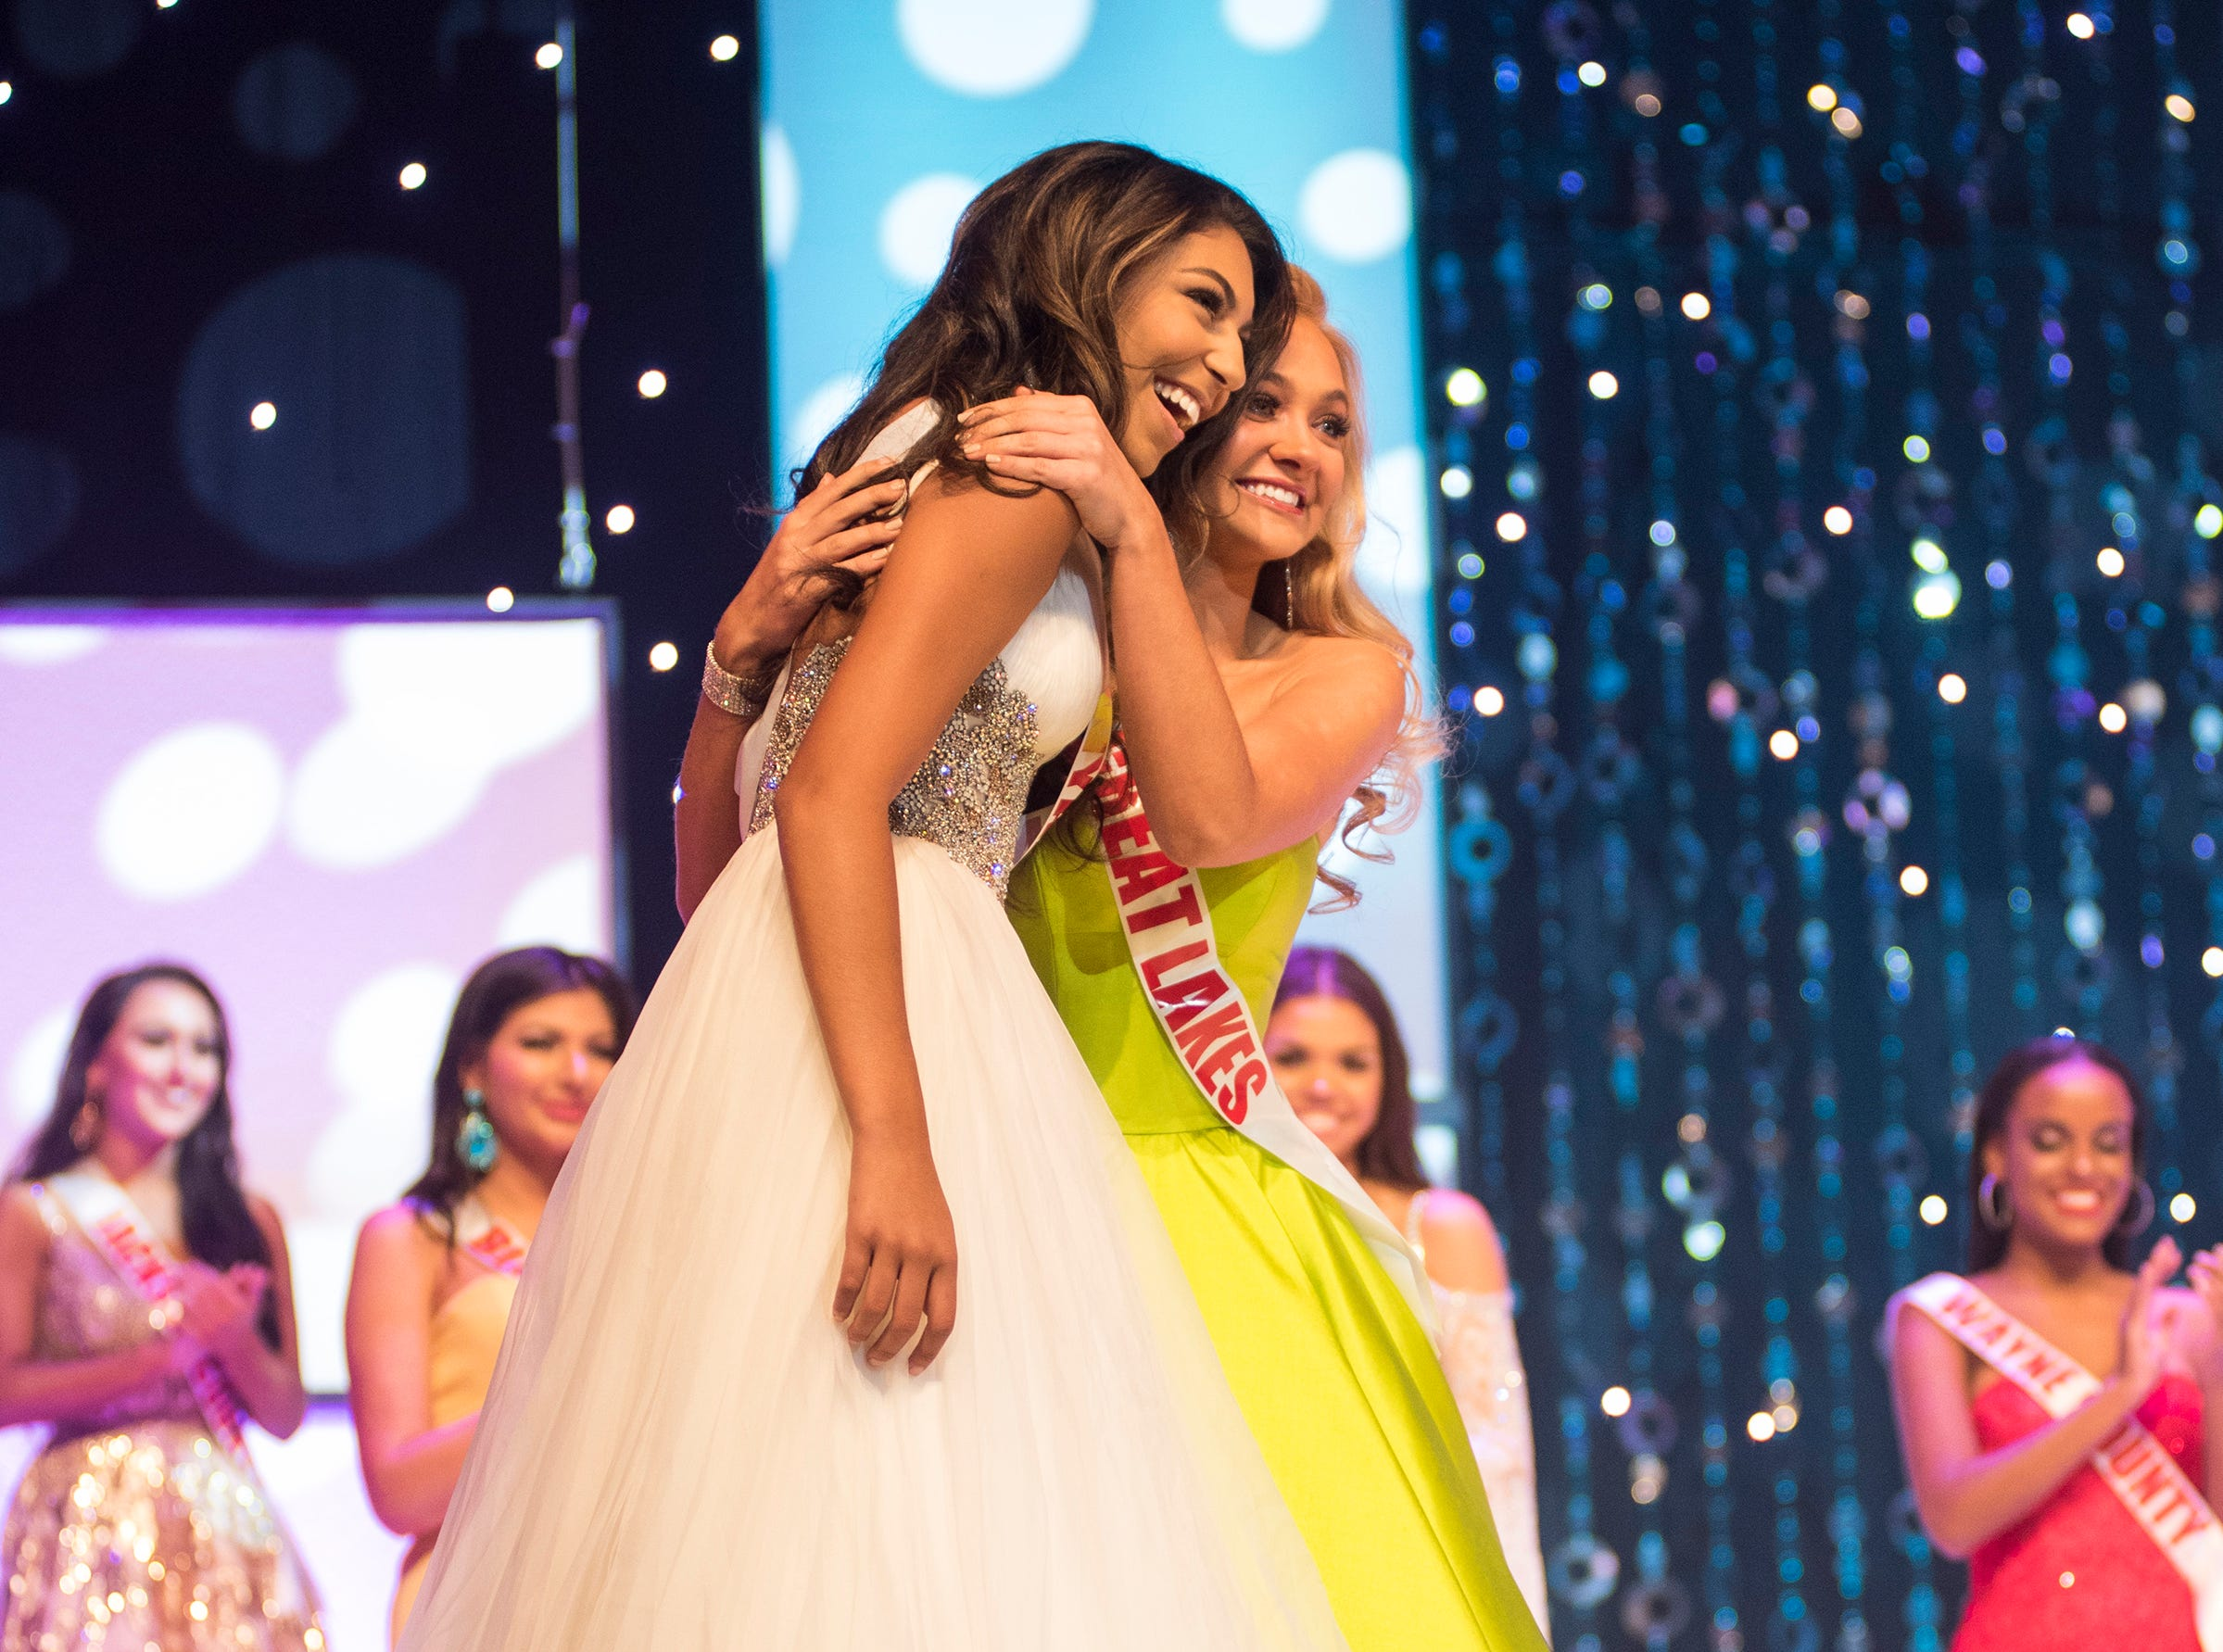 Miss Wyandotte Teen Alexis Fagan, left, is hugged by Miss Great Lakes Teen Rebecca Larsen after being chosen for the final round of the Miss Michigan Teen USA pageant Saturday, Sept. 22, 2018 at McMorran Theater.